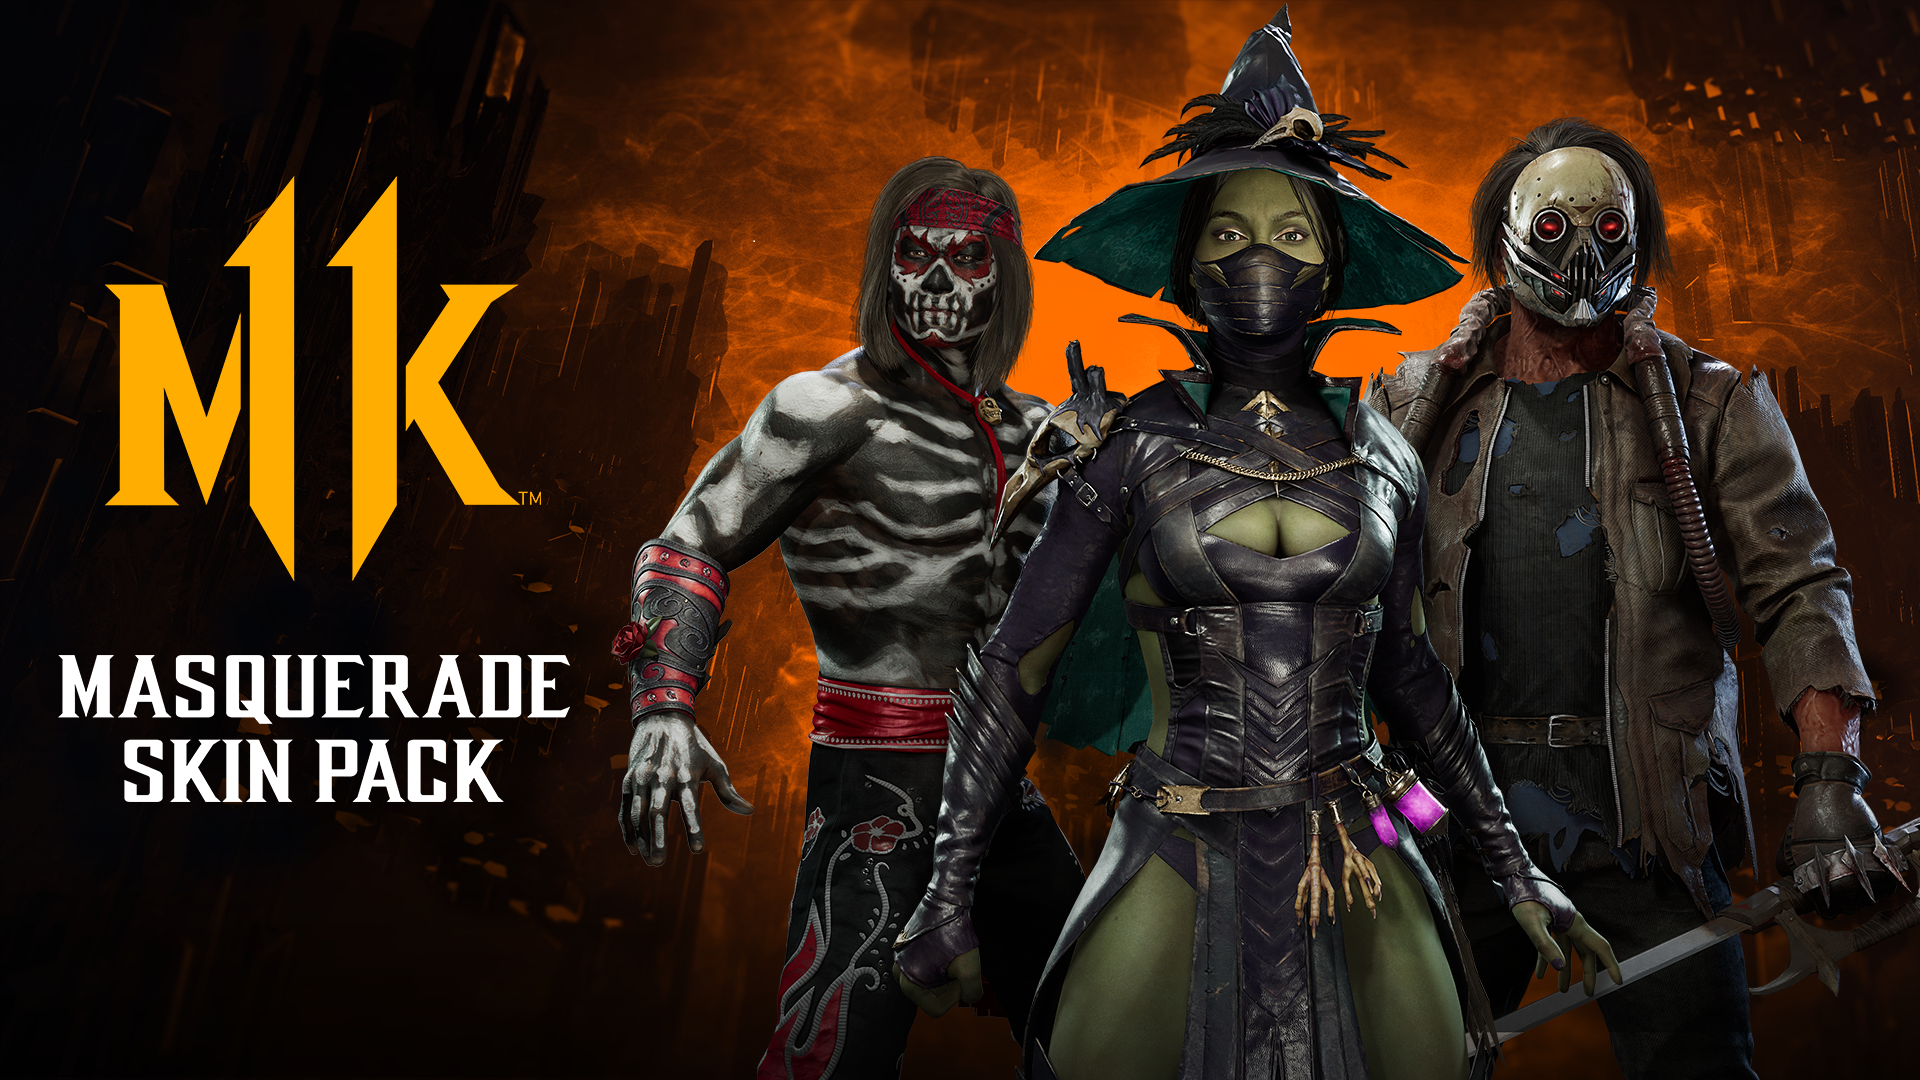 Mortal Kombat 11 Gets Into the Halloween Spirit